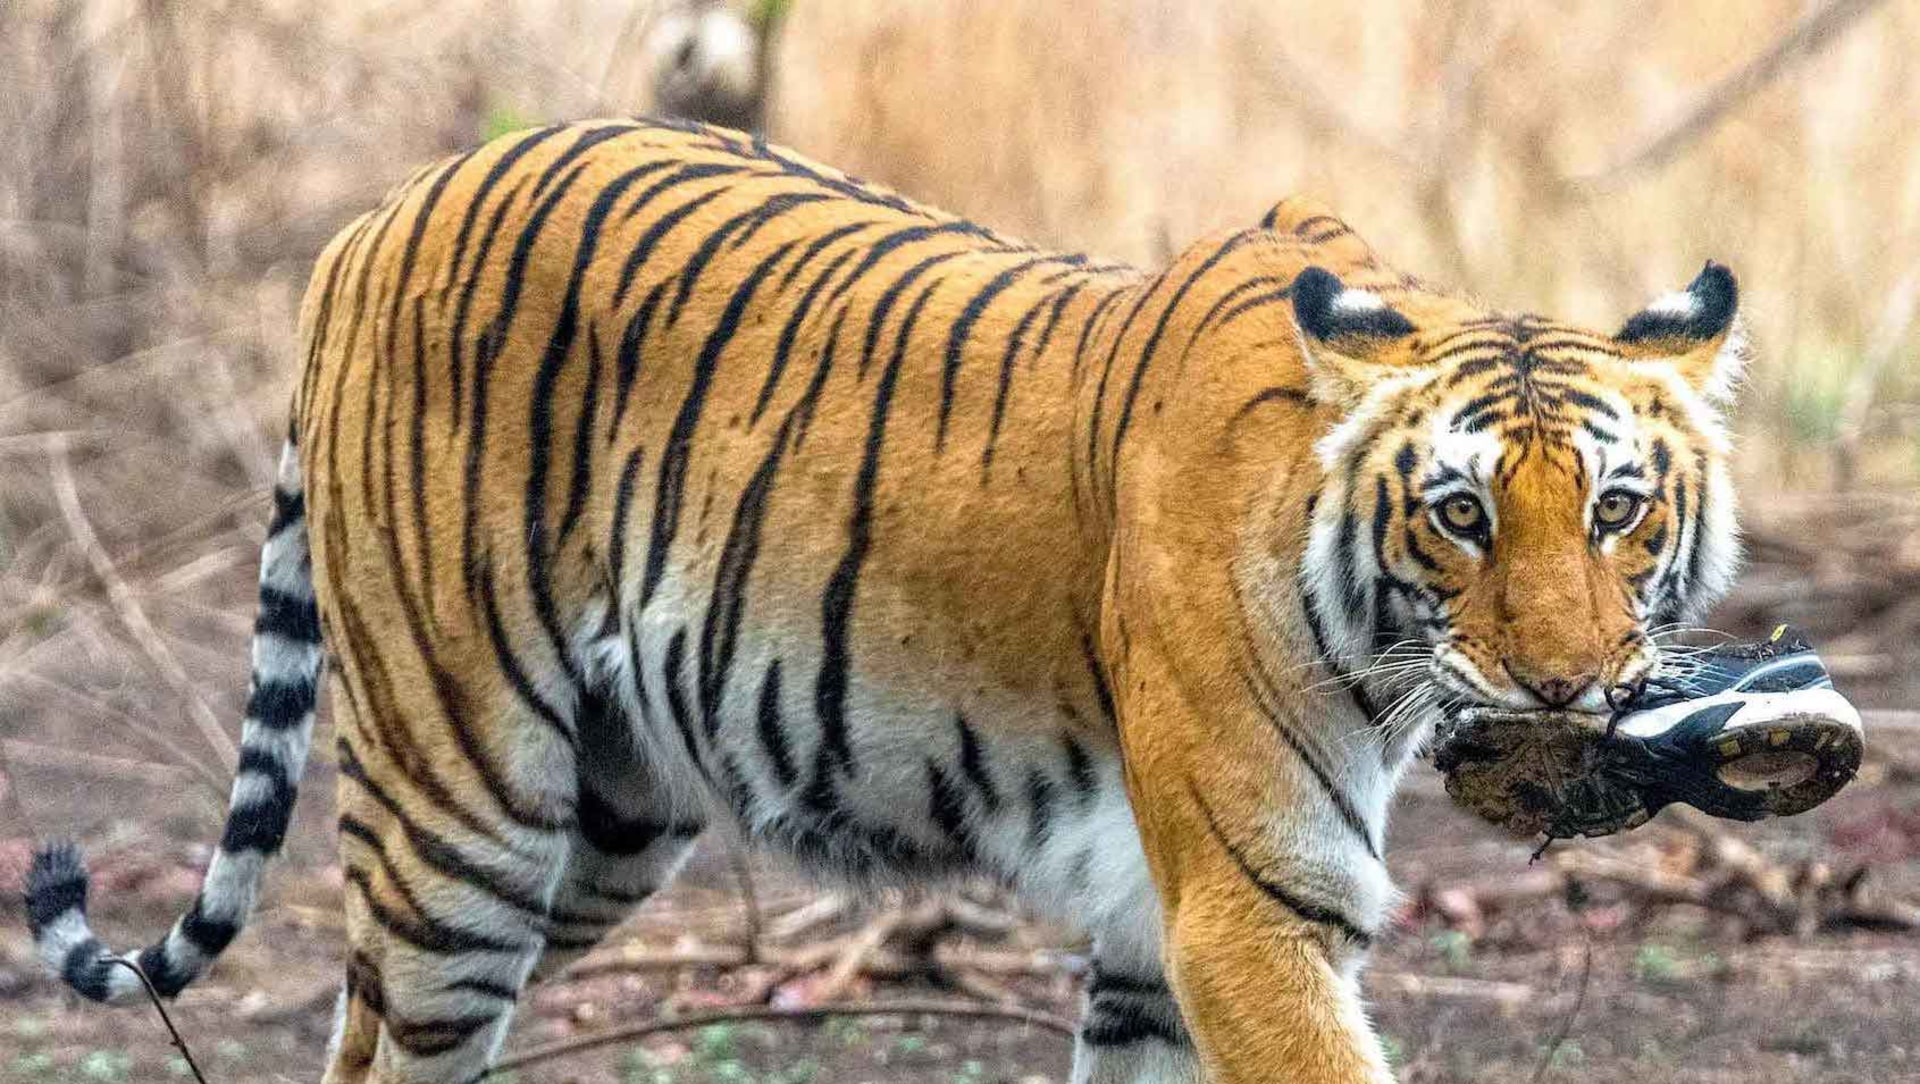 In Our Filth: When Wild Animals Forage in Polluted Habitats